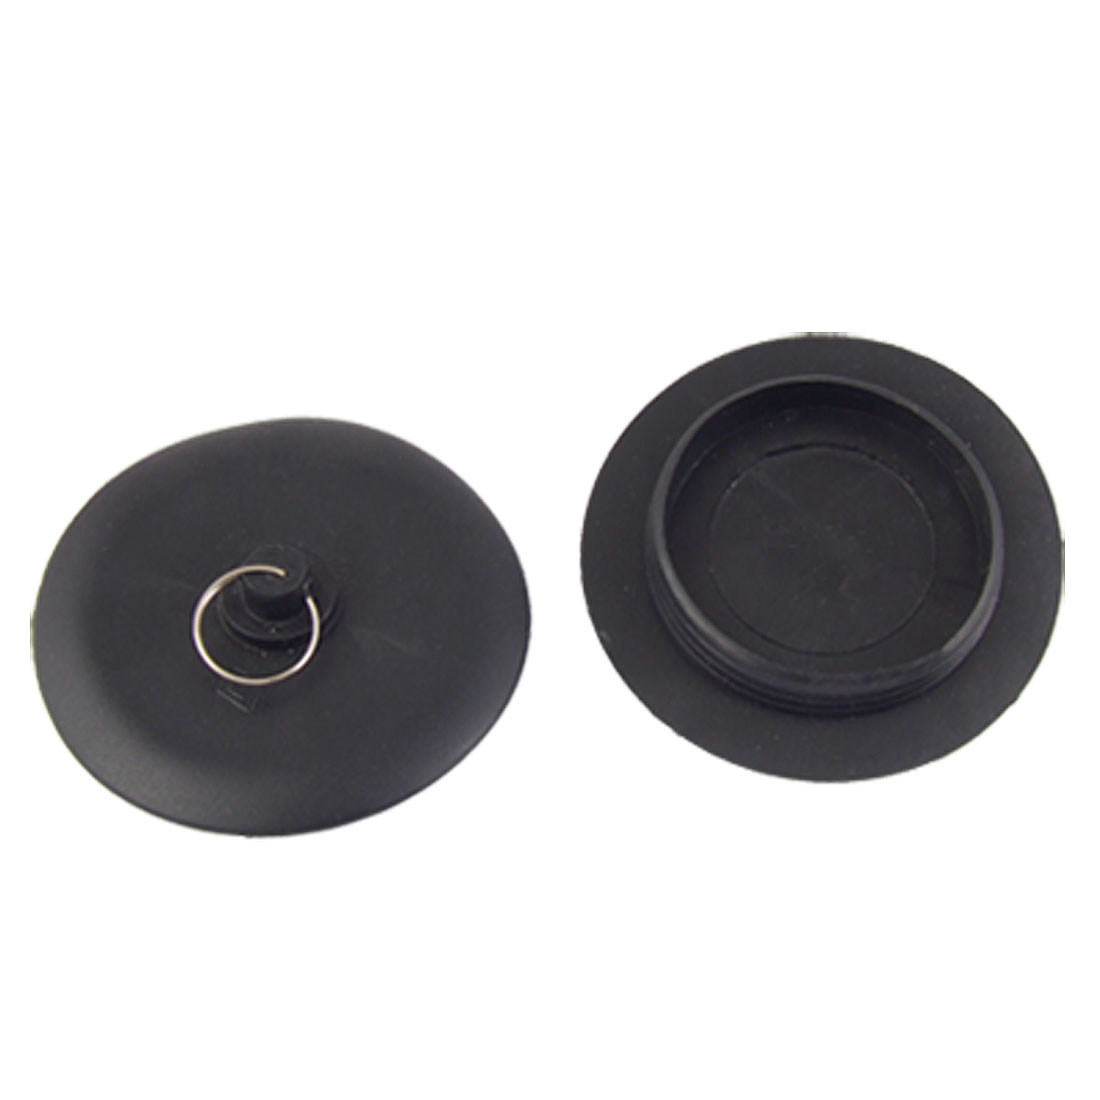 2 Pcs Black Rubber Stopper Bathtub Sink Wash Basin Stainer